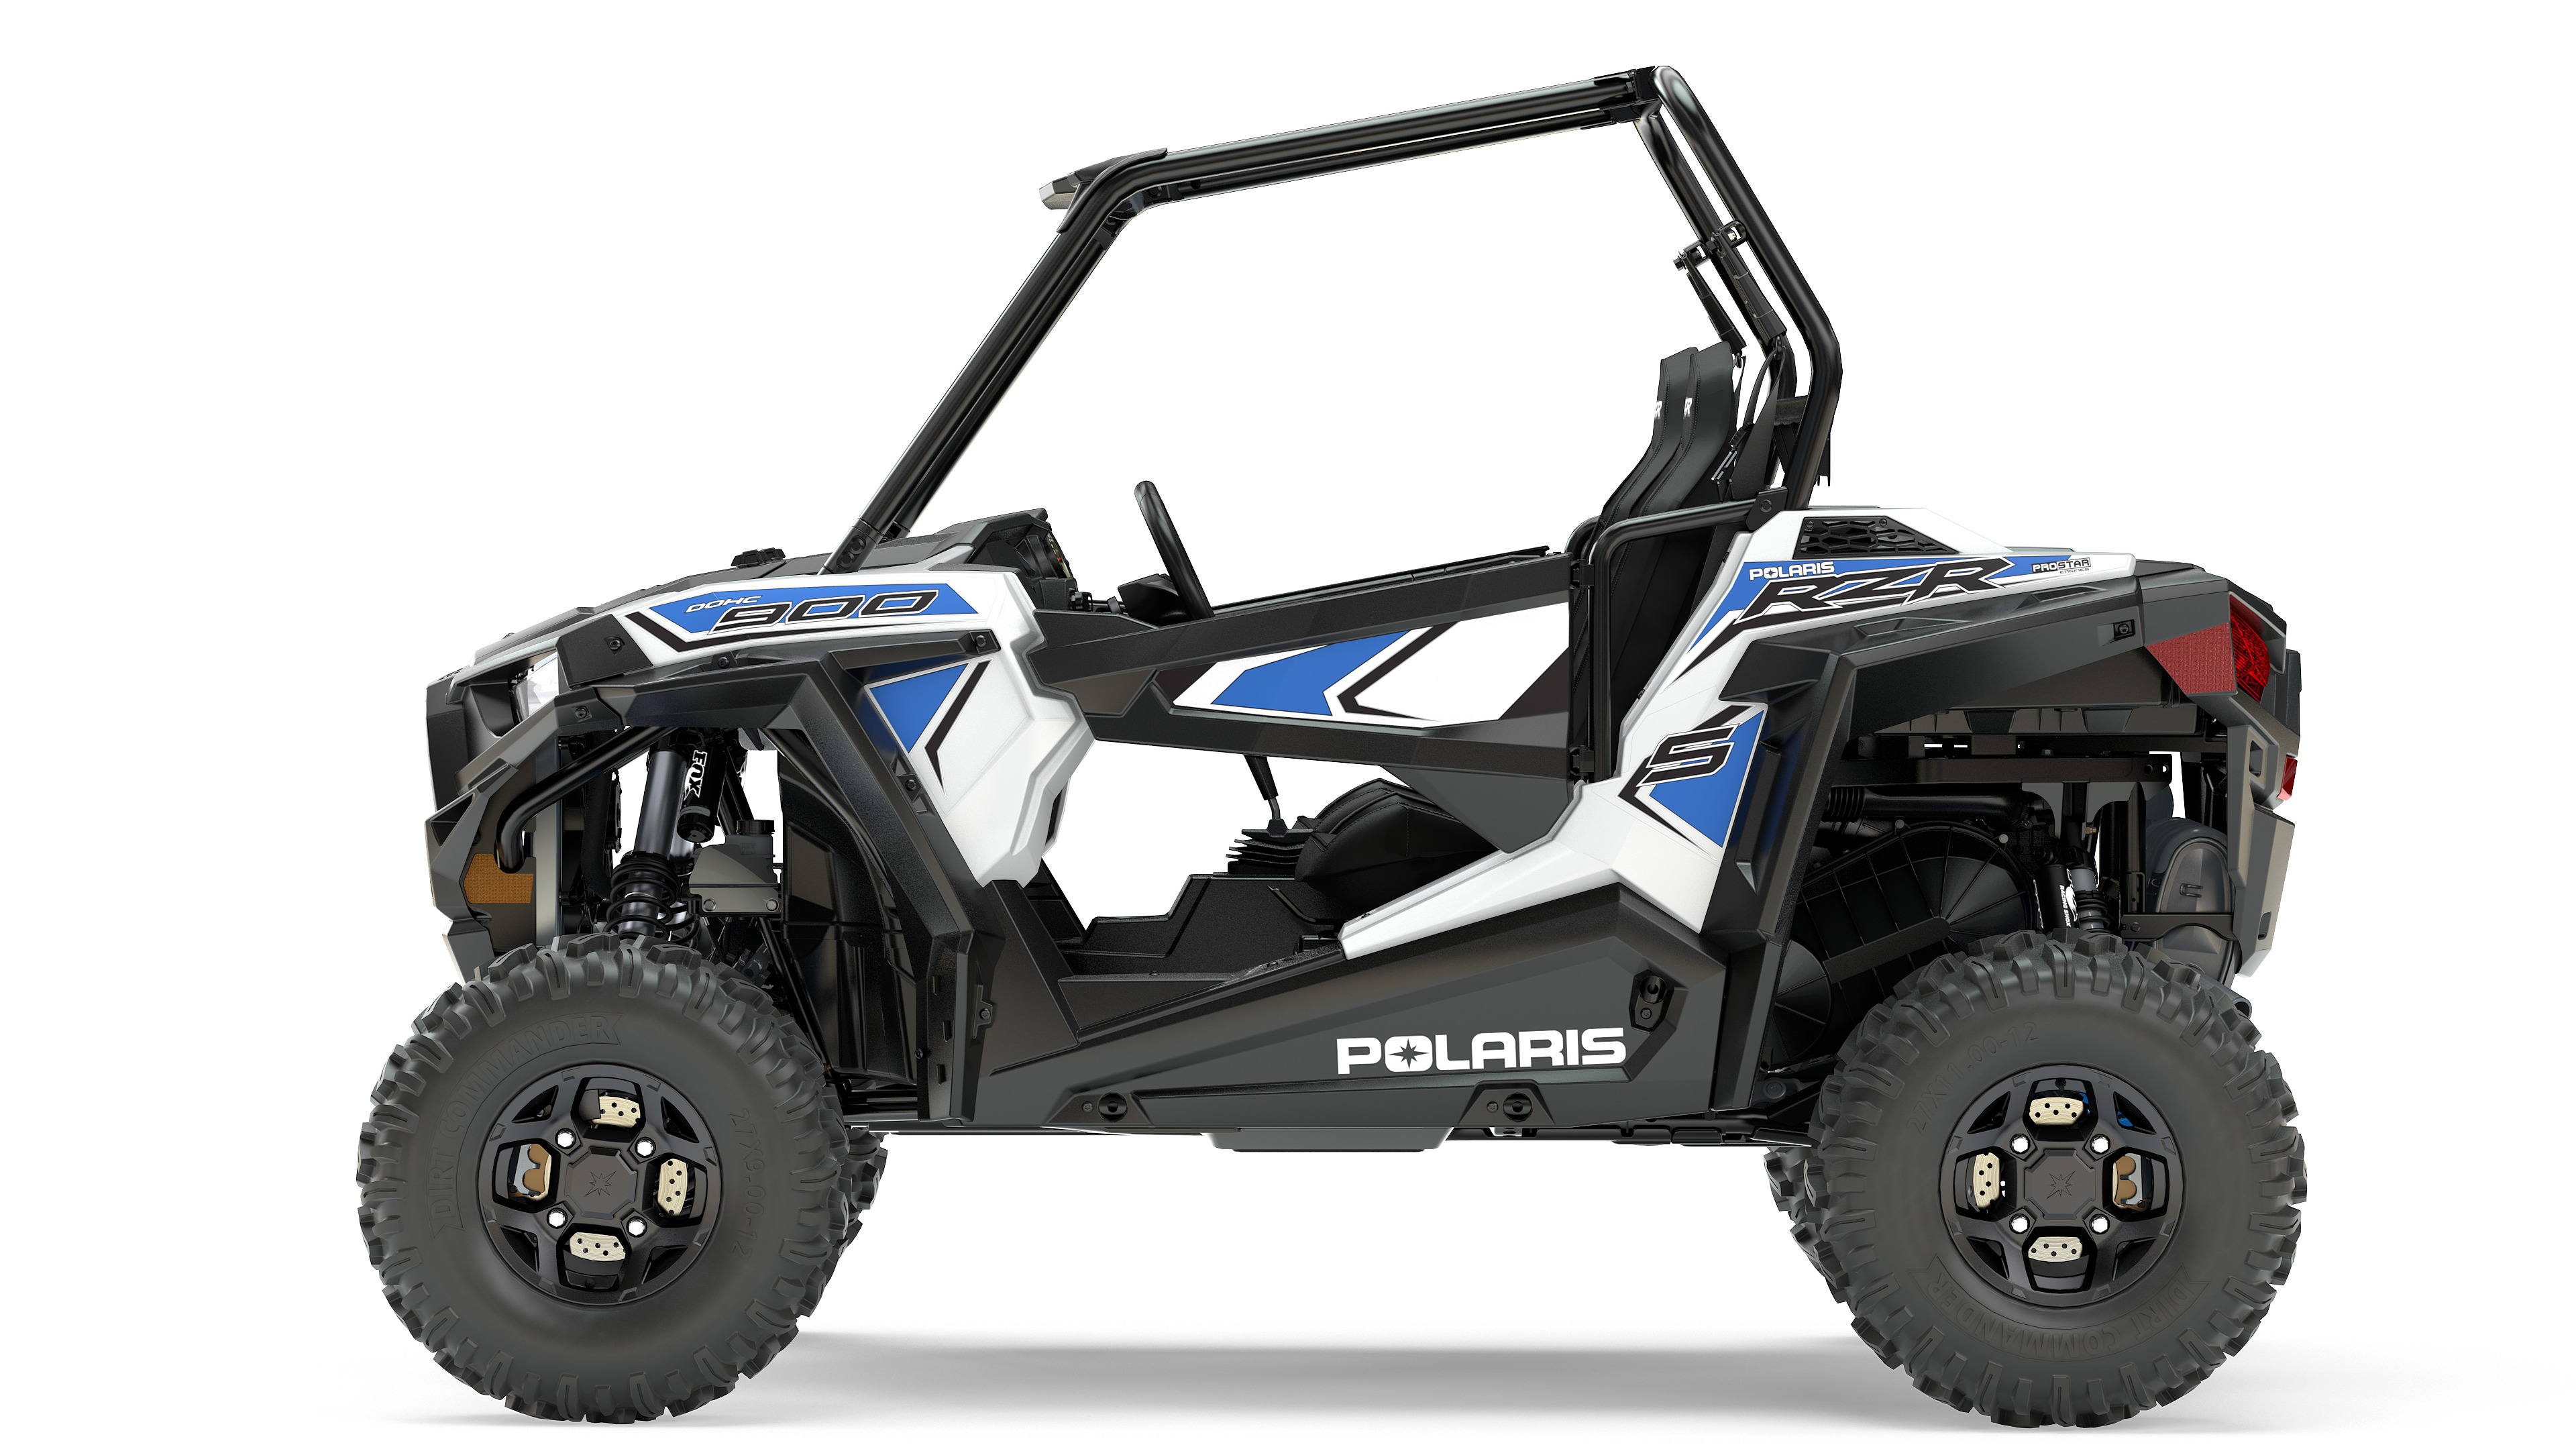 polaris recalls rzr and general recreational off highway. Black Bedroom Furniture Sets. Home Design Ideas